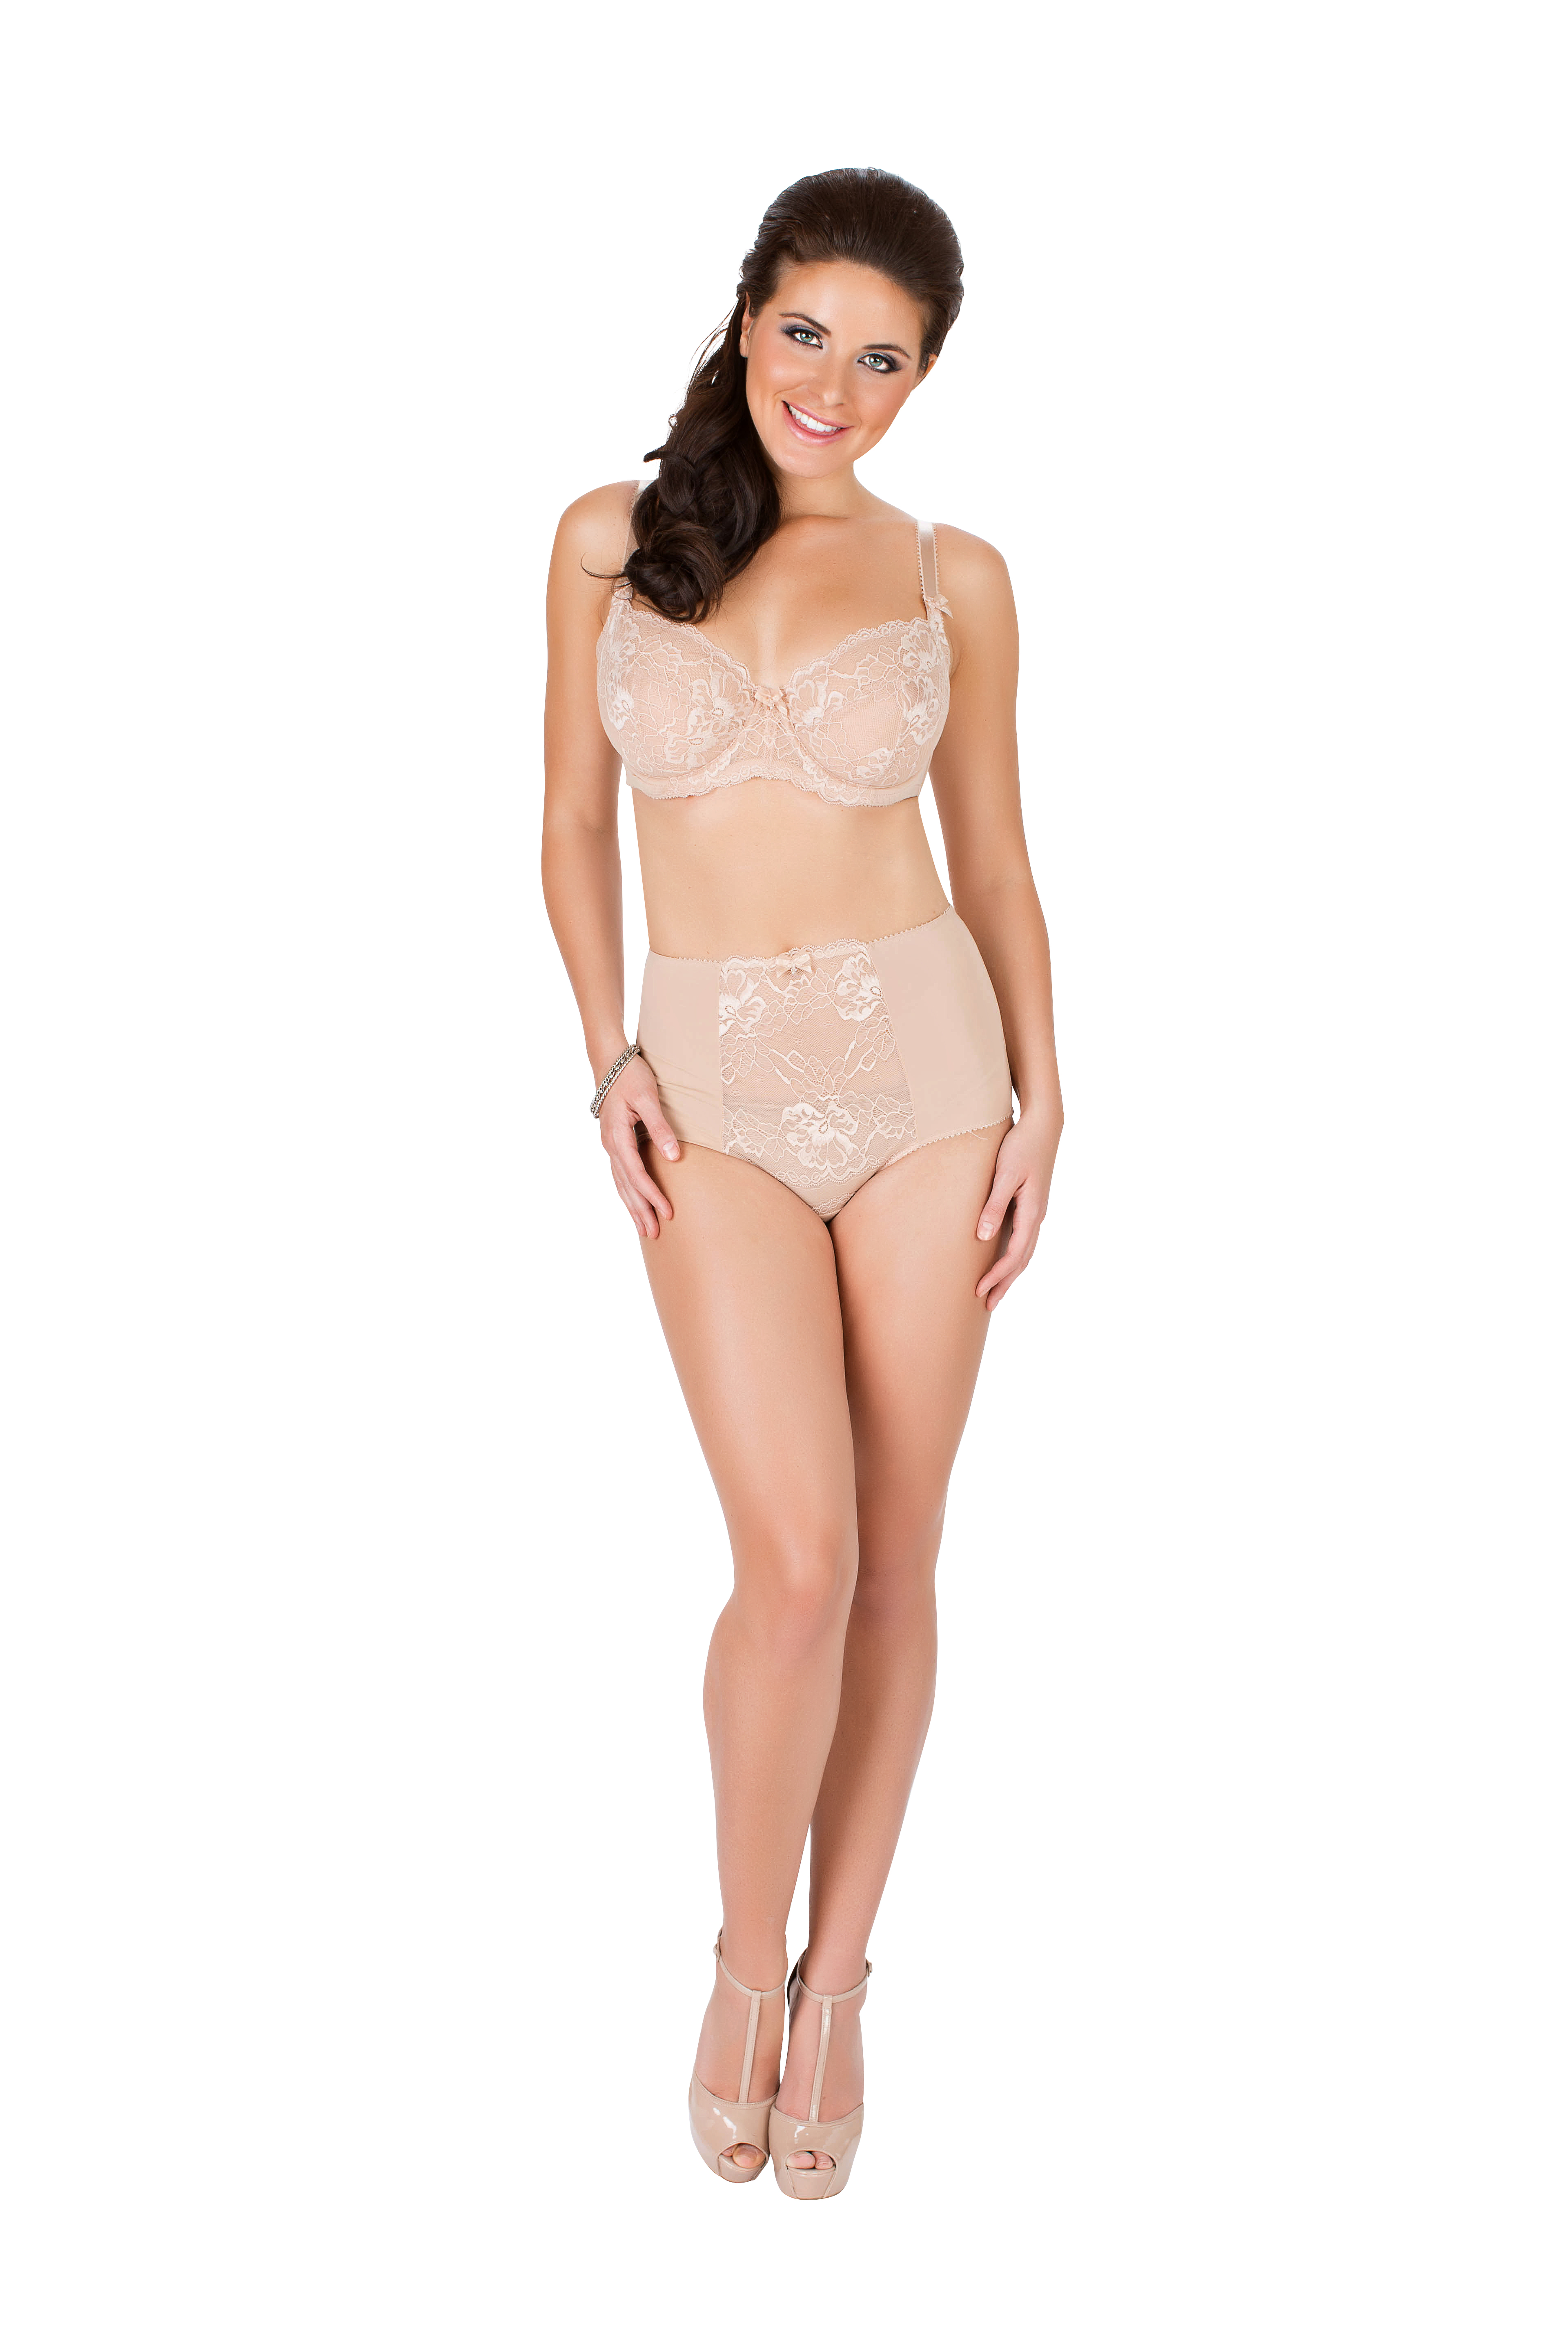 """Sophia"" Wire Bra and High-Waist Brief by Parfait.  Available in sizes 30-40 D-K (UK), in Beige and Pearl White."